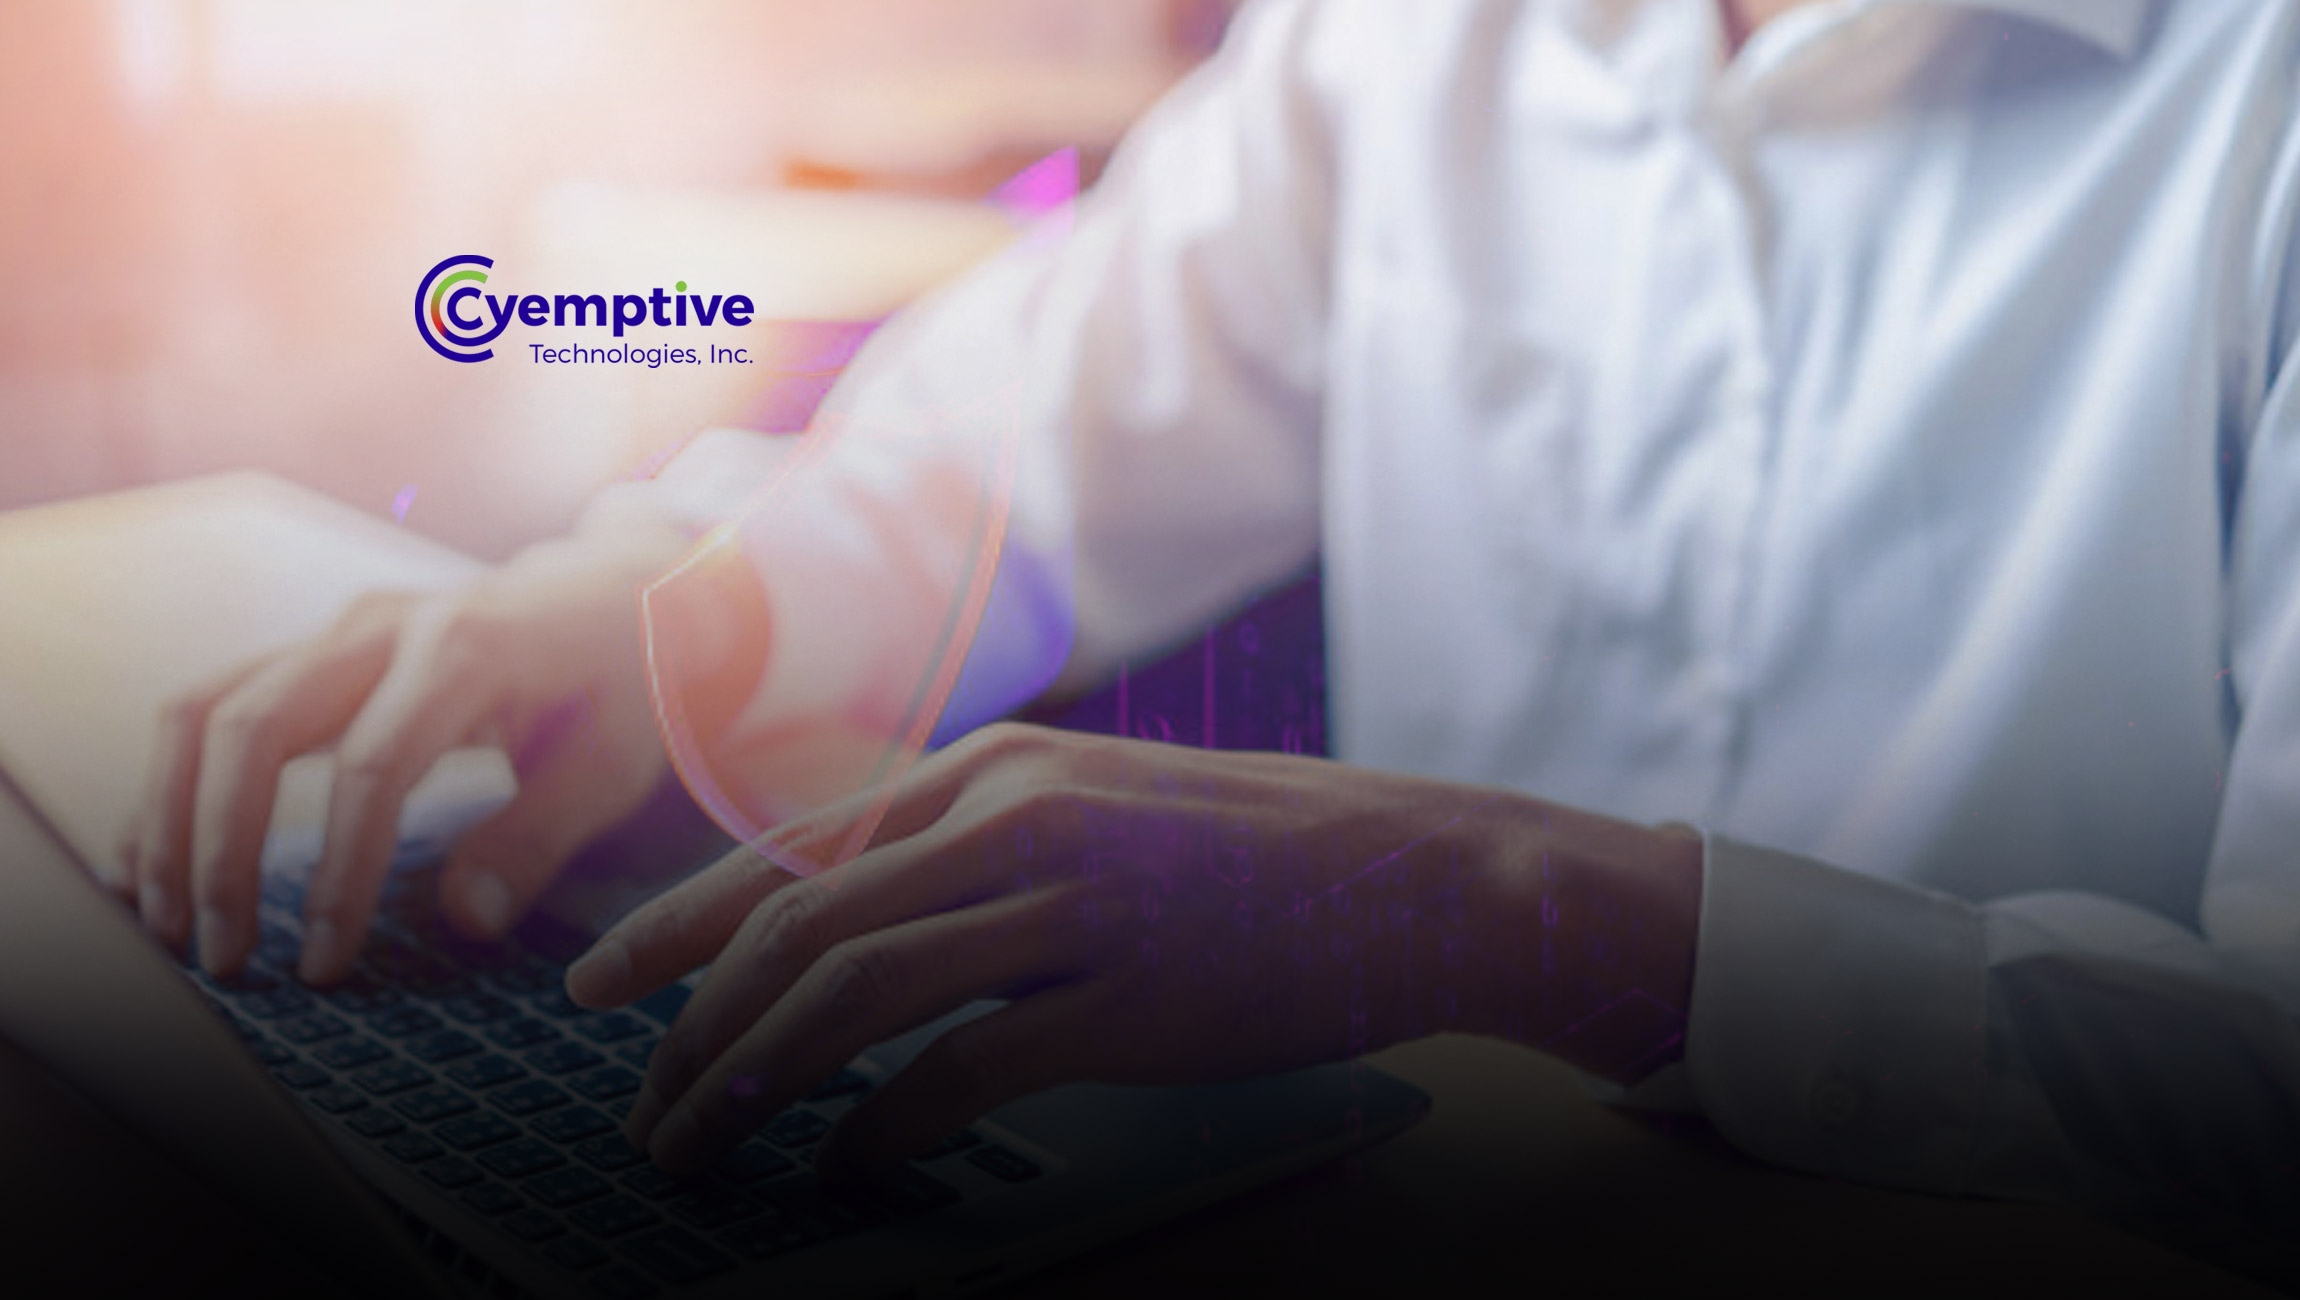 Cybersecurity Pioneer Cyemptive Technologies Names Former USAF and NSA Network and Security System Specialist Alan Yarusevich as Principal Security Solution Architect